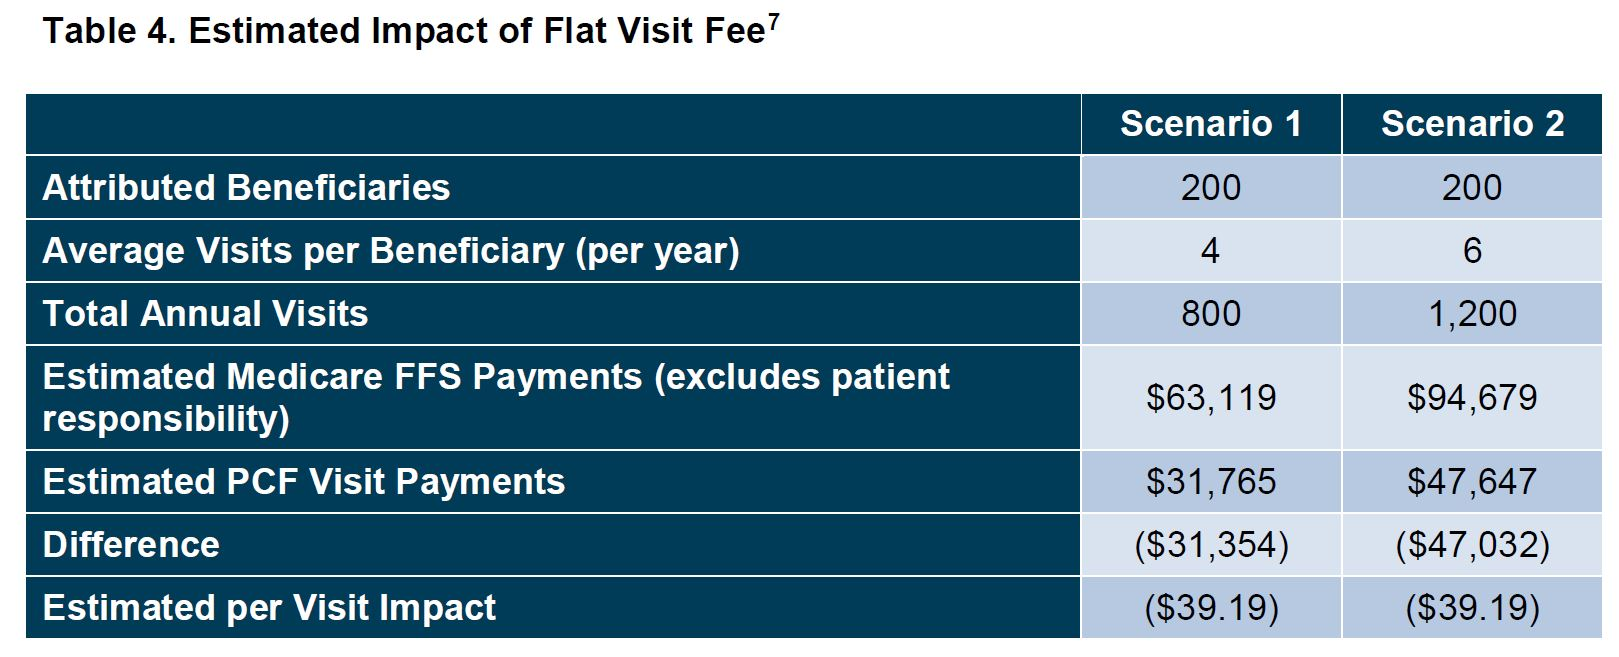 Estimated Impact of Flat Services Fee